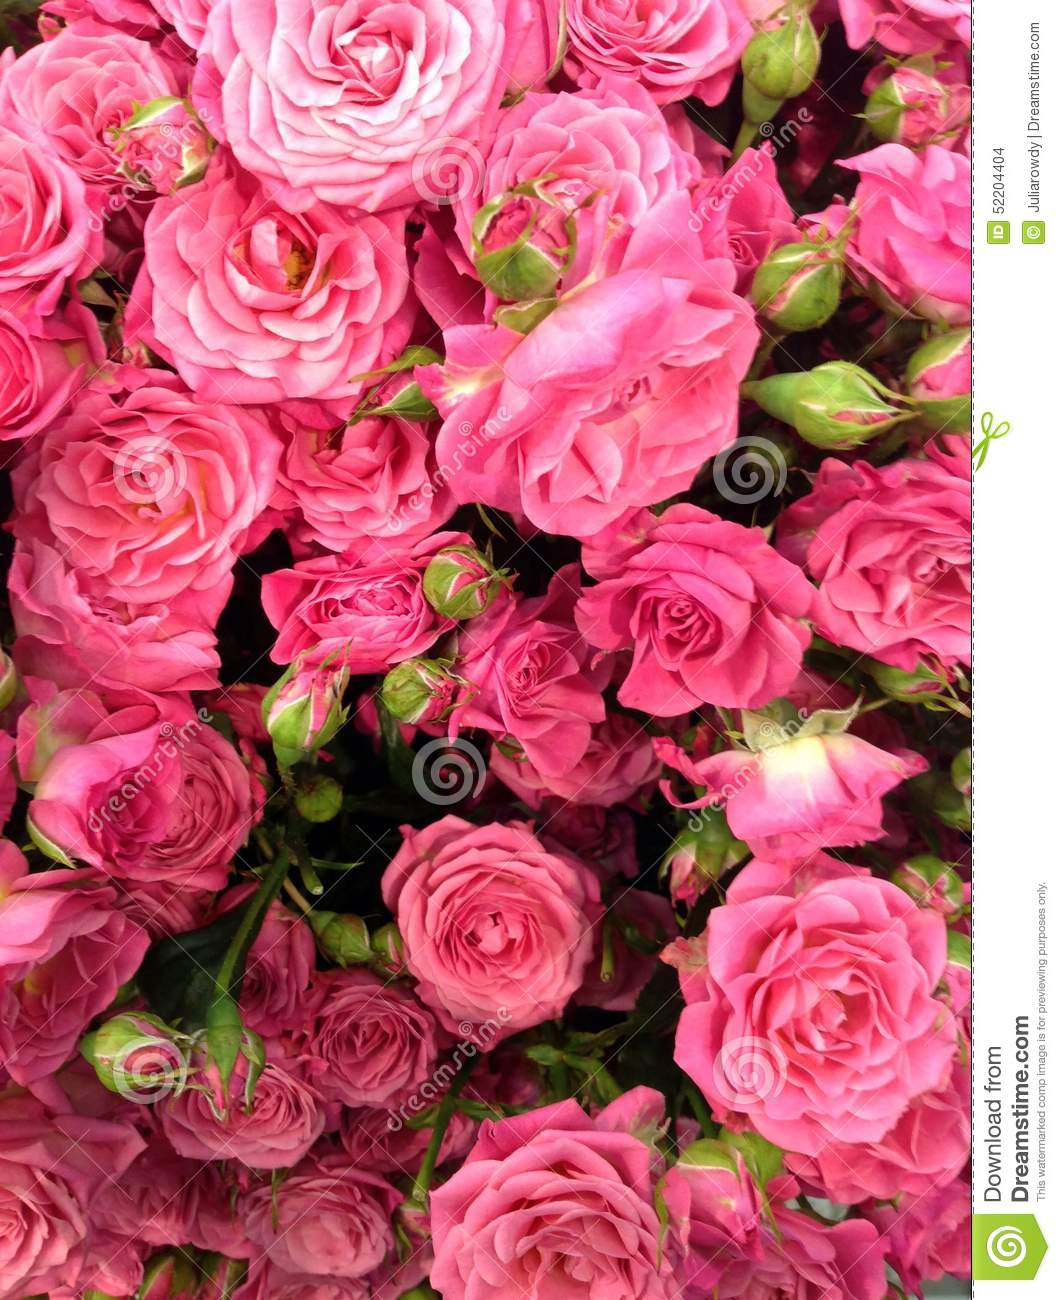 Flower power stock photo image of pile florist color 52204404 pile of beautiful flowers roses of rose color dozens of flowers of different colour flower show florist industry pack of izmirmasajfo